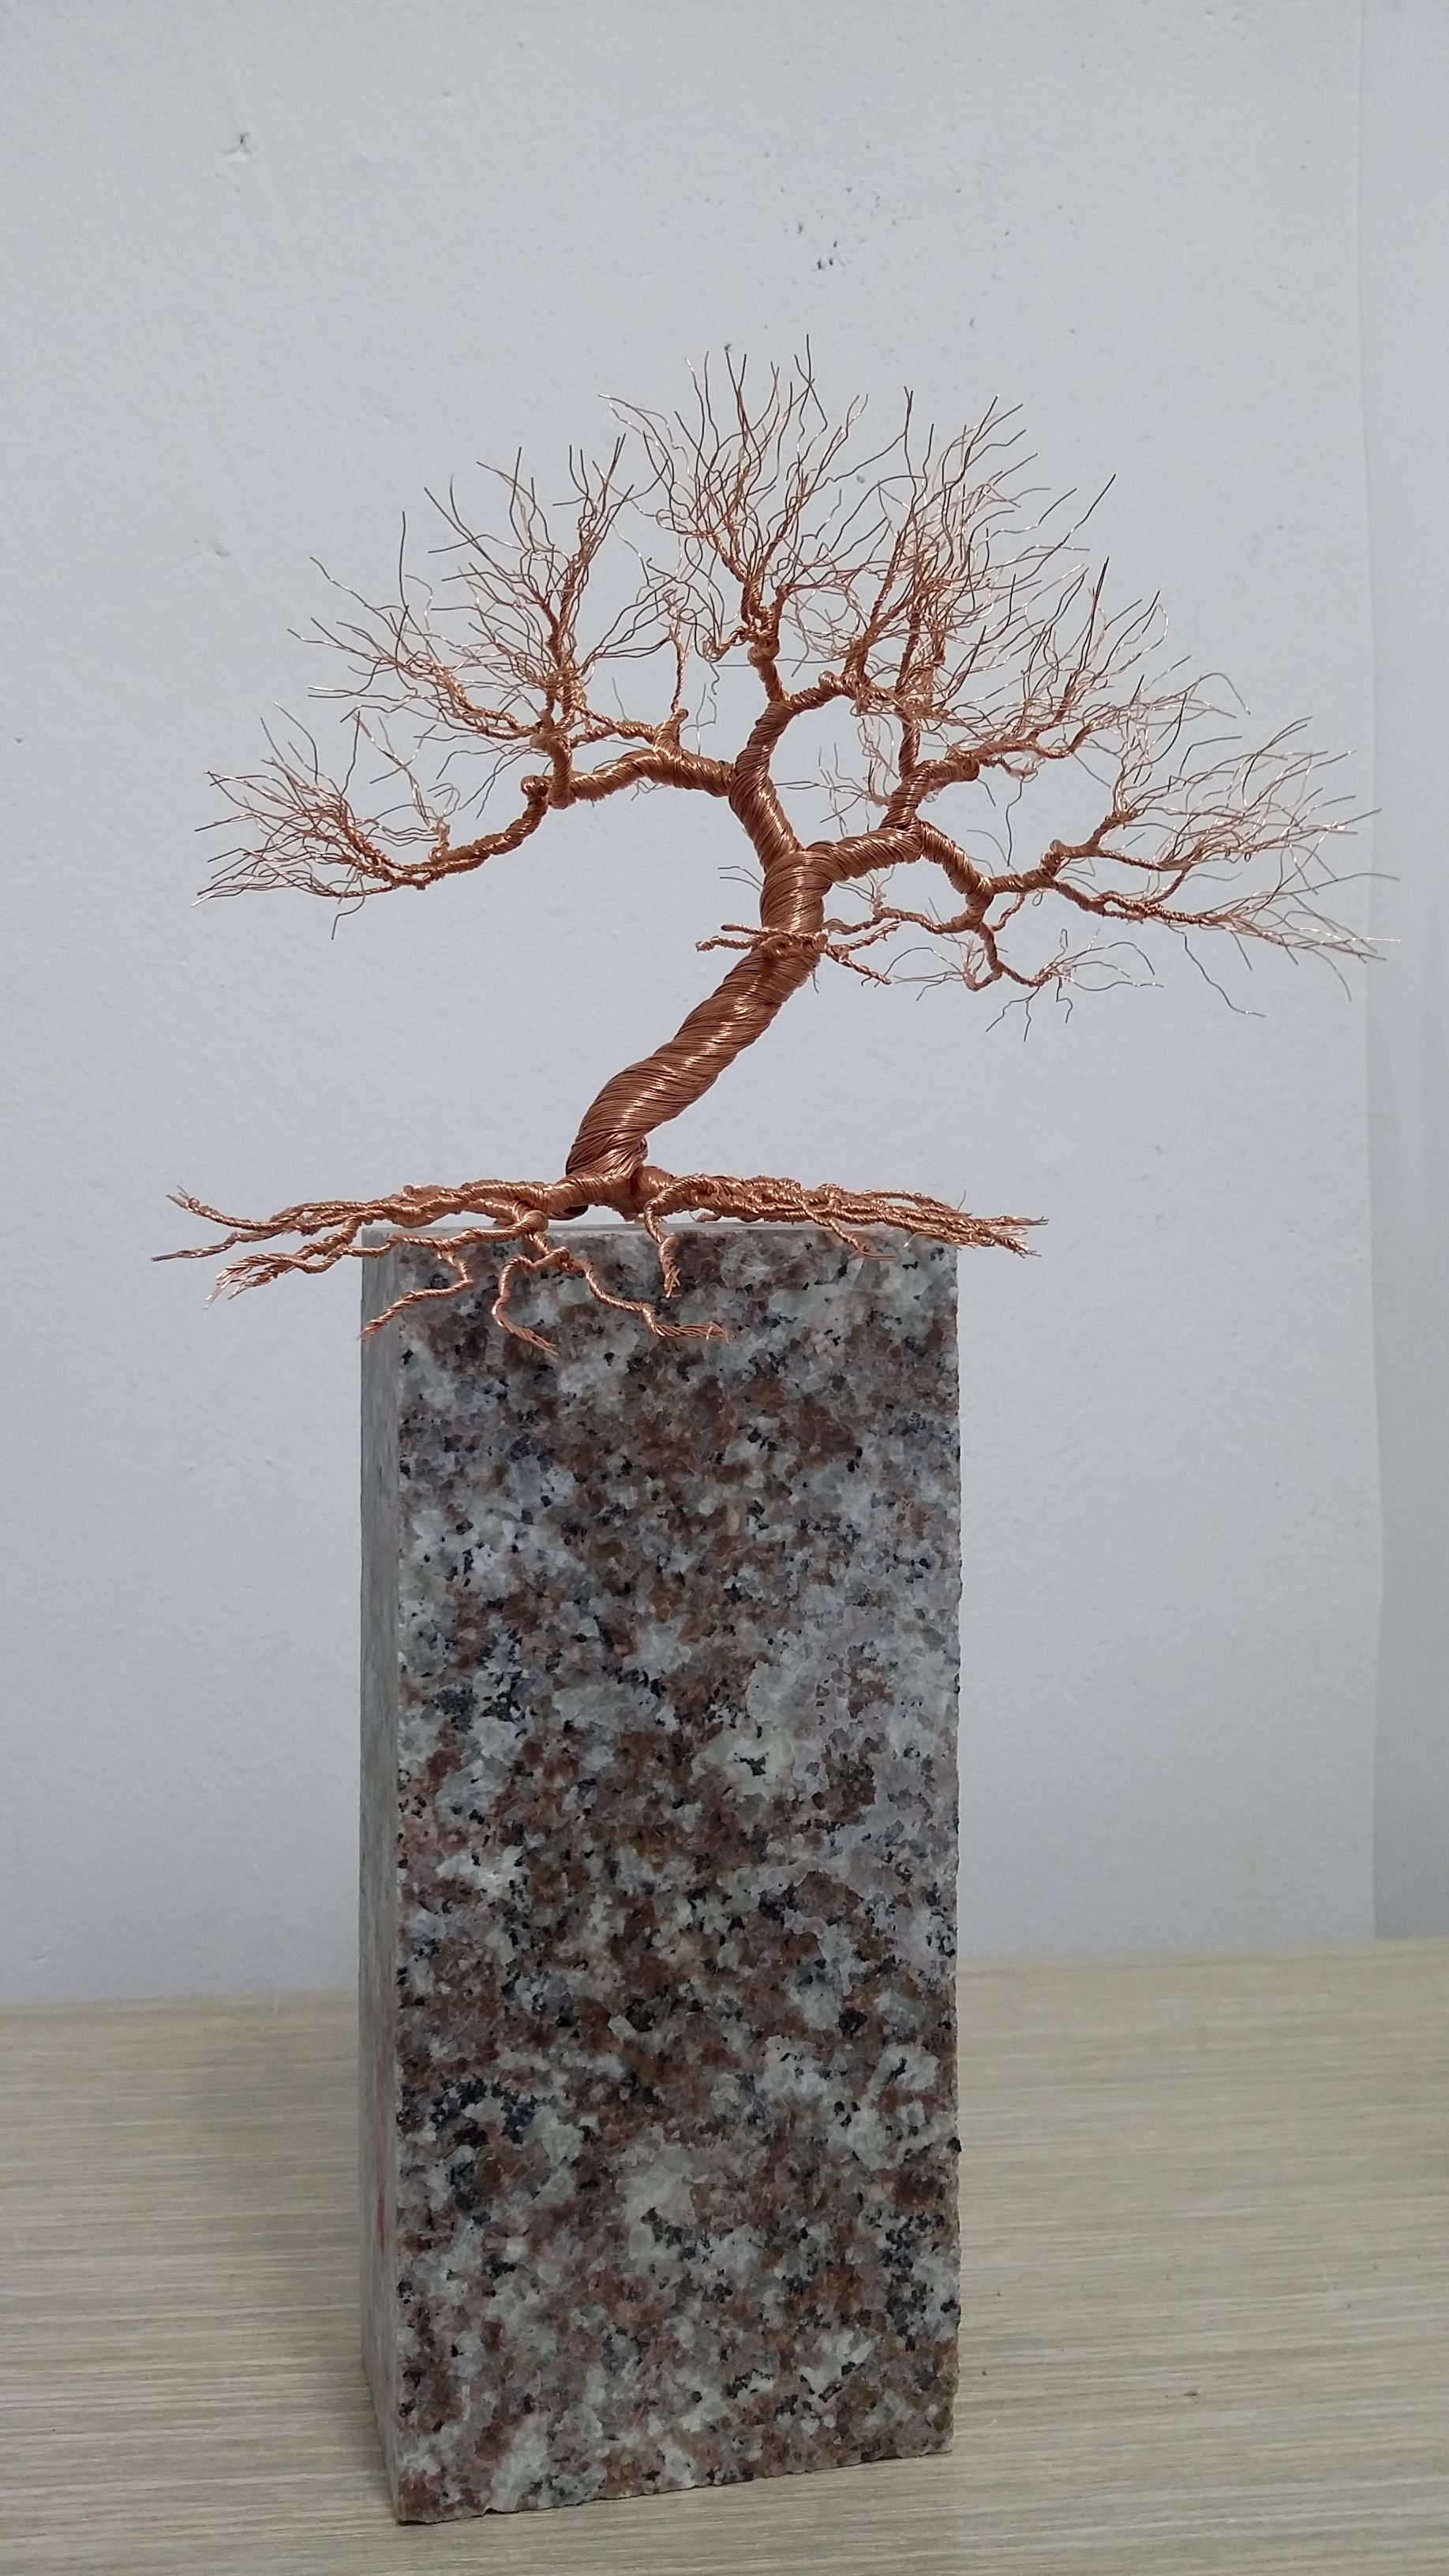 Pin by Patricia Bansen on Wire Trees   Pinterest   Wire trees, Wire ...